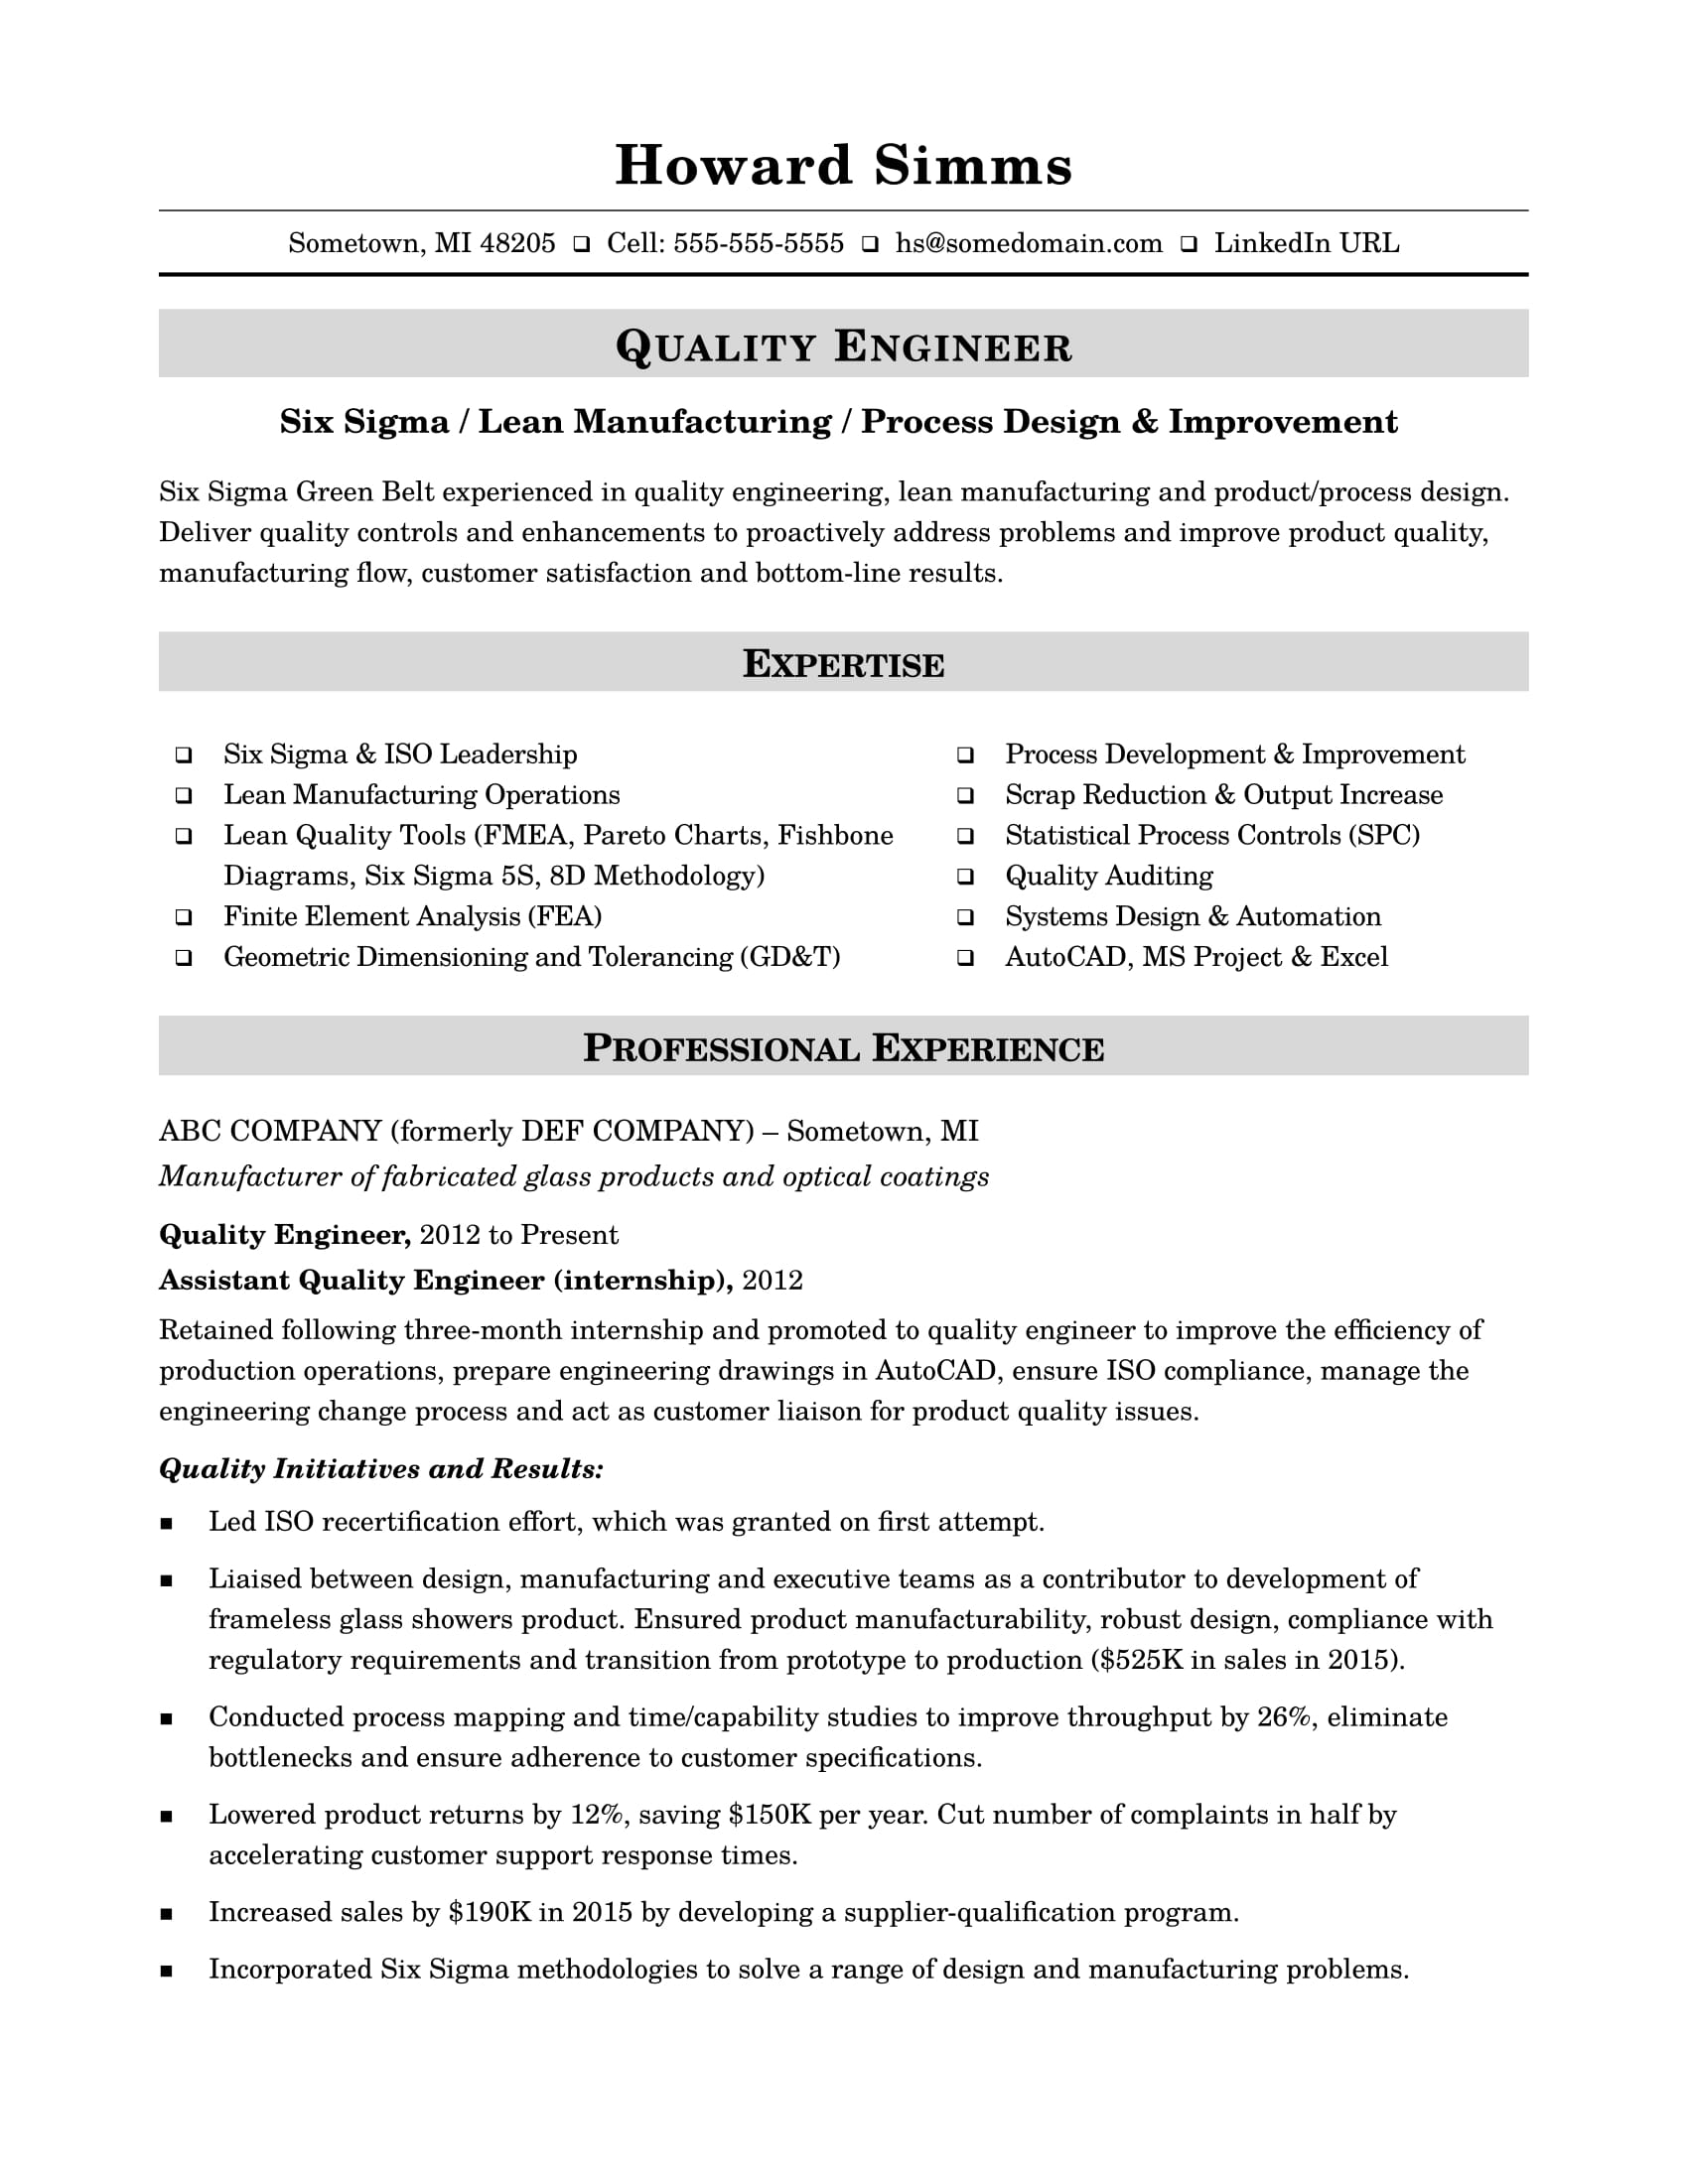 Sample Resume For A Midlevel Quality Engineer  MonsterCom